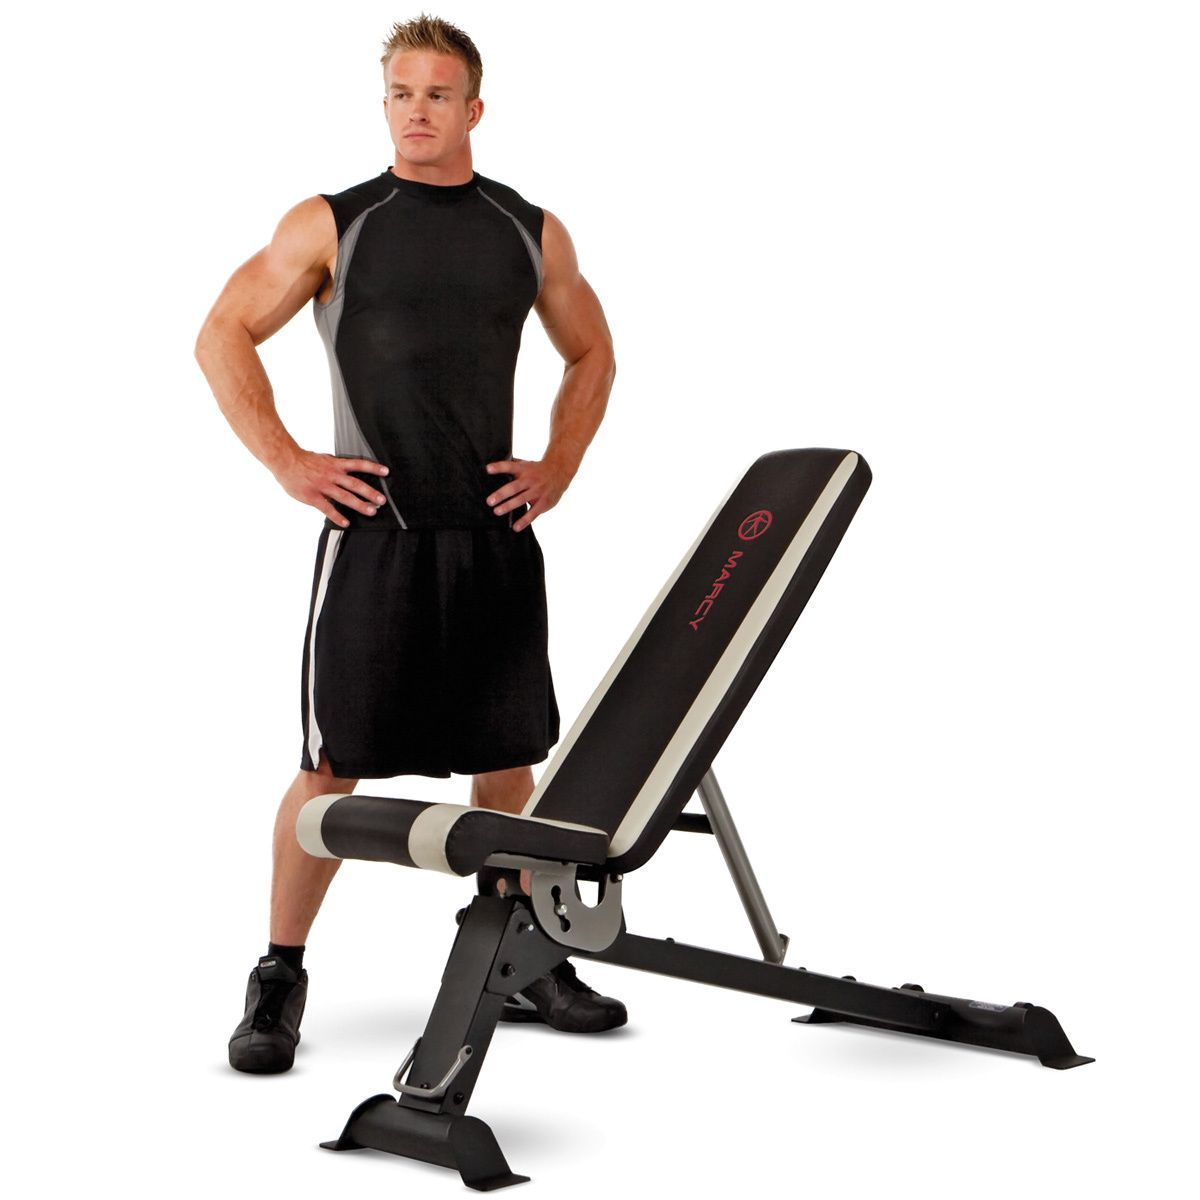 Our Best Fitness Exercise Equipment Deals Gym